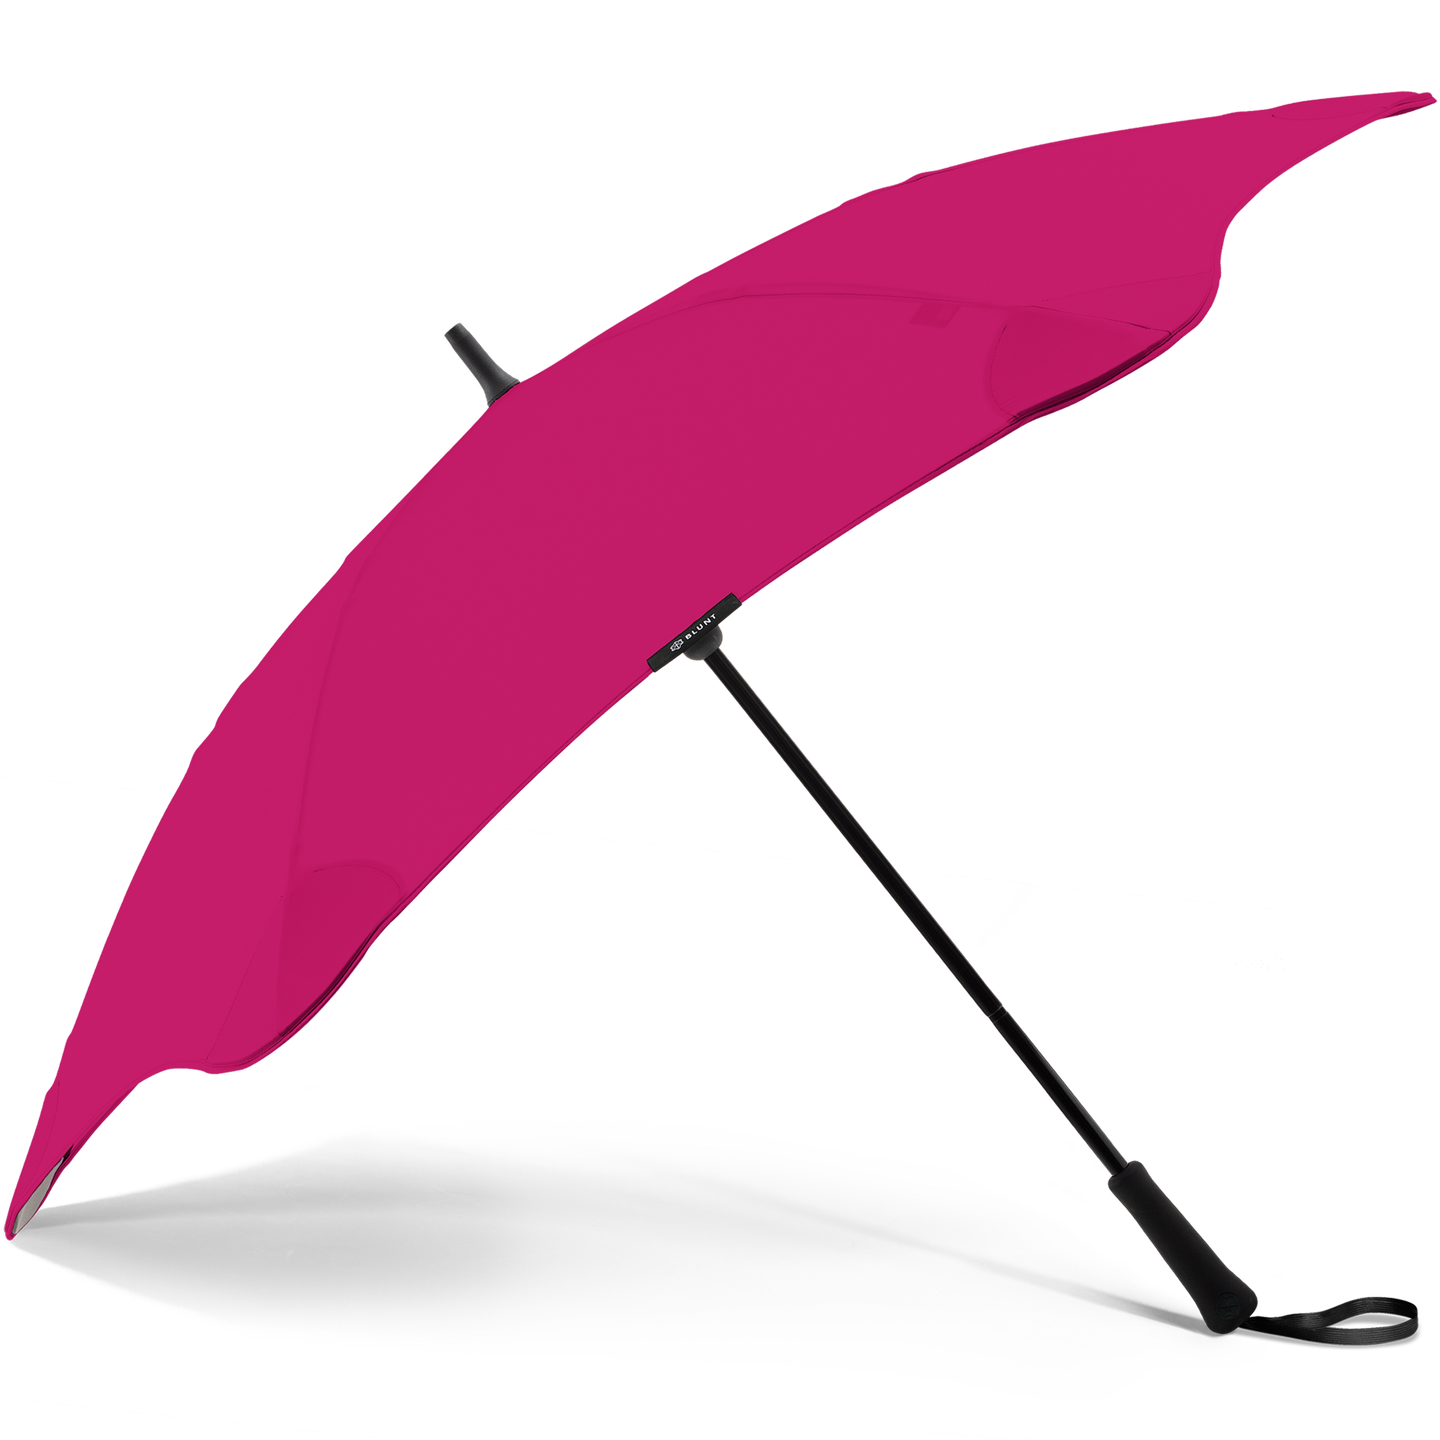 2020 Classic Pink Blunt Umbrella Side View